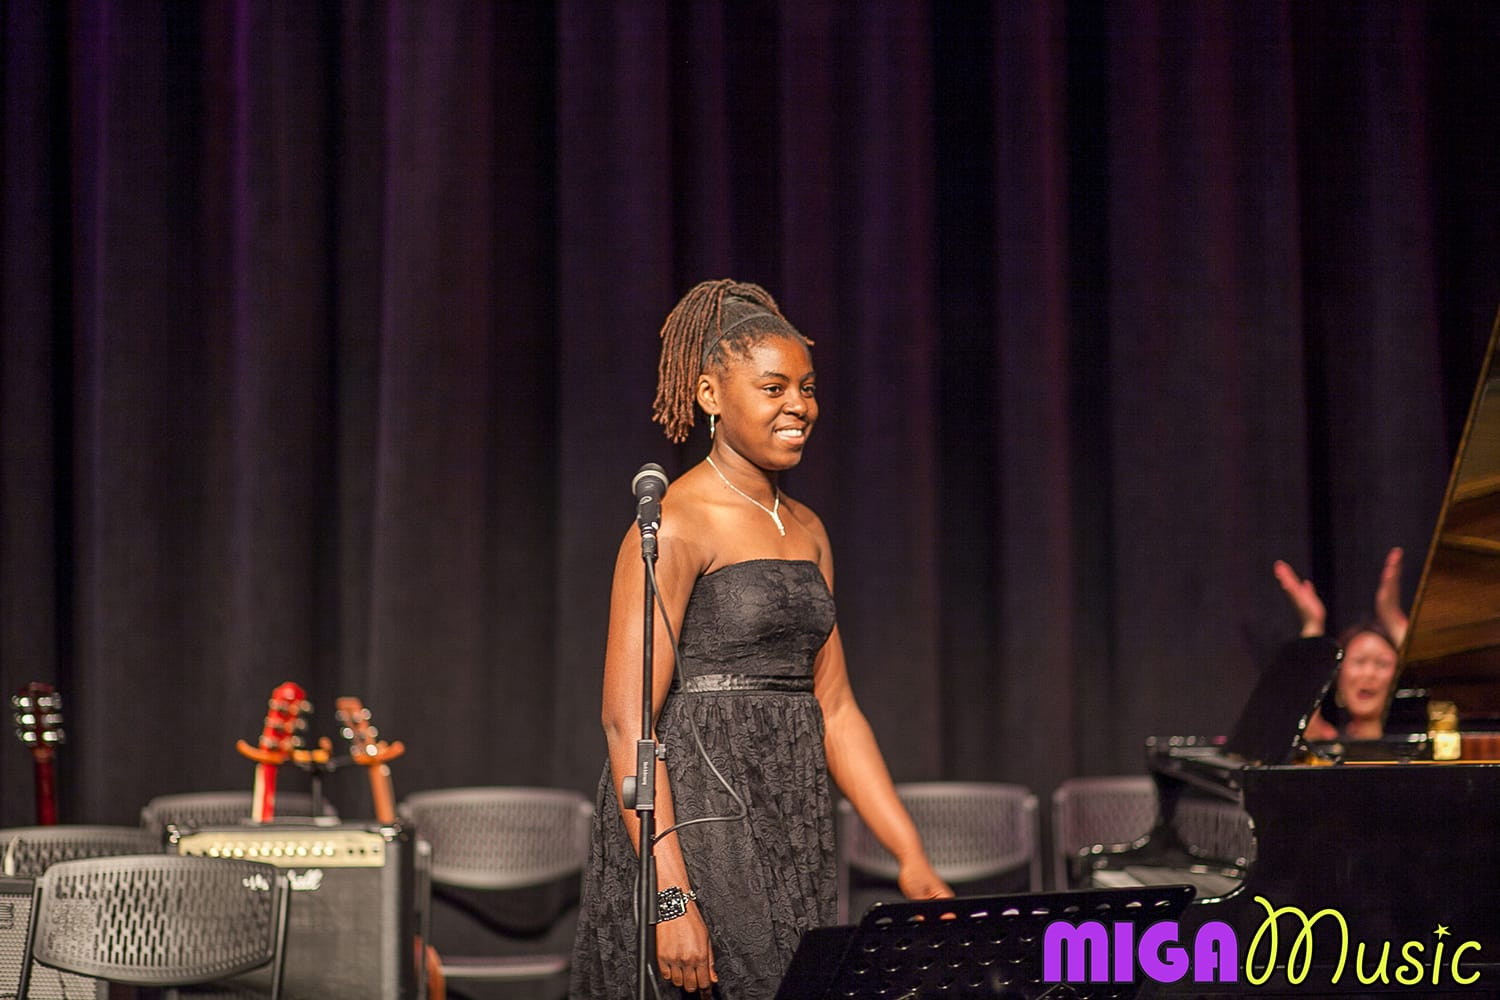 MIGA Music vocal student Samantha at our Recitals smiling and wearing a long black dress